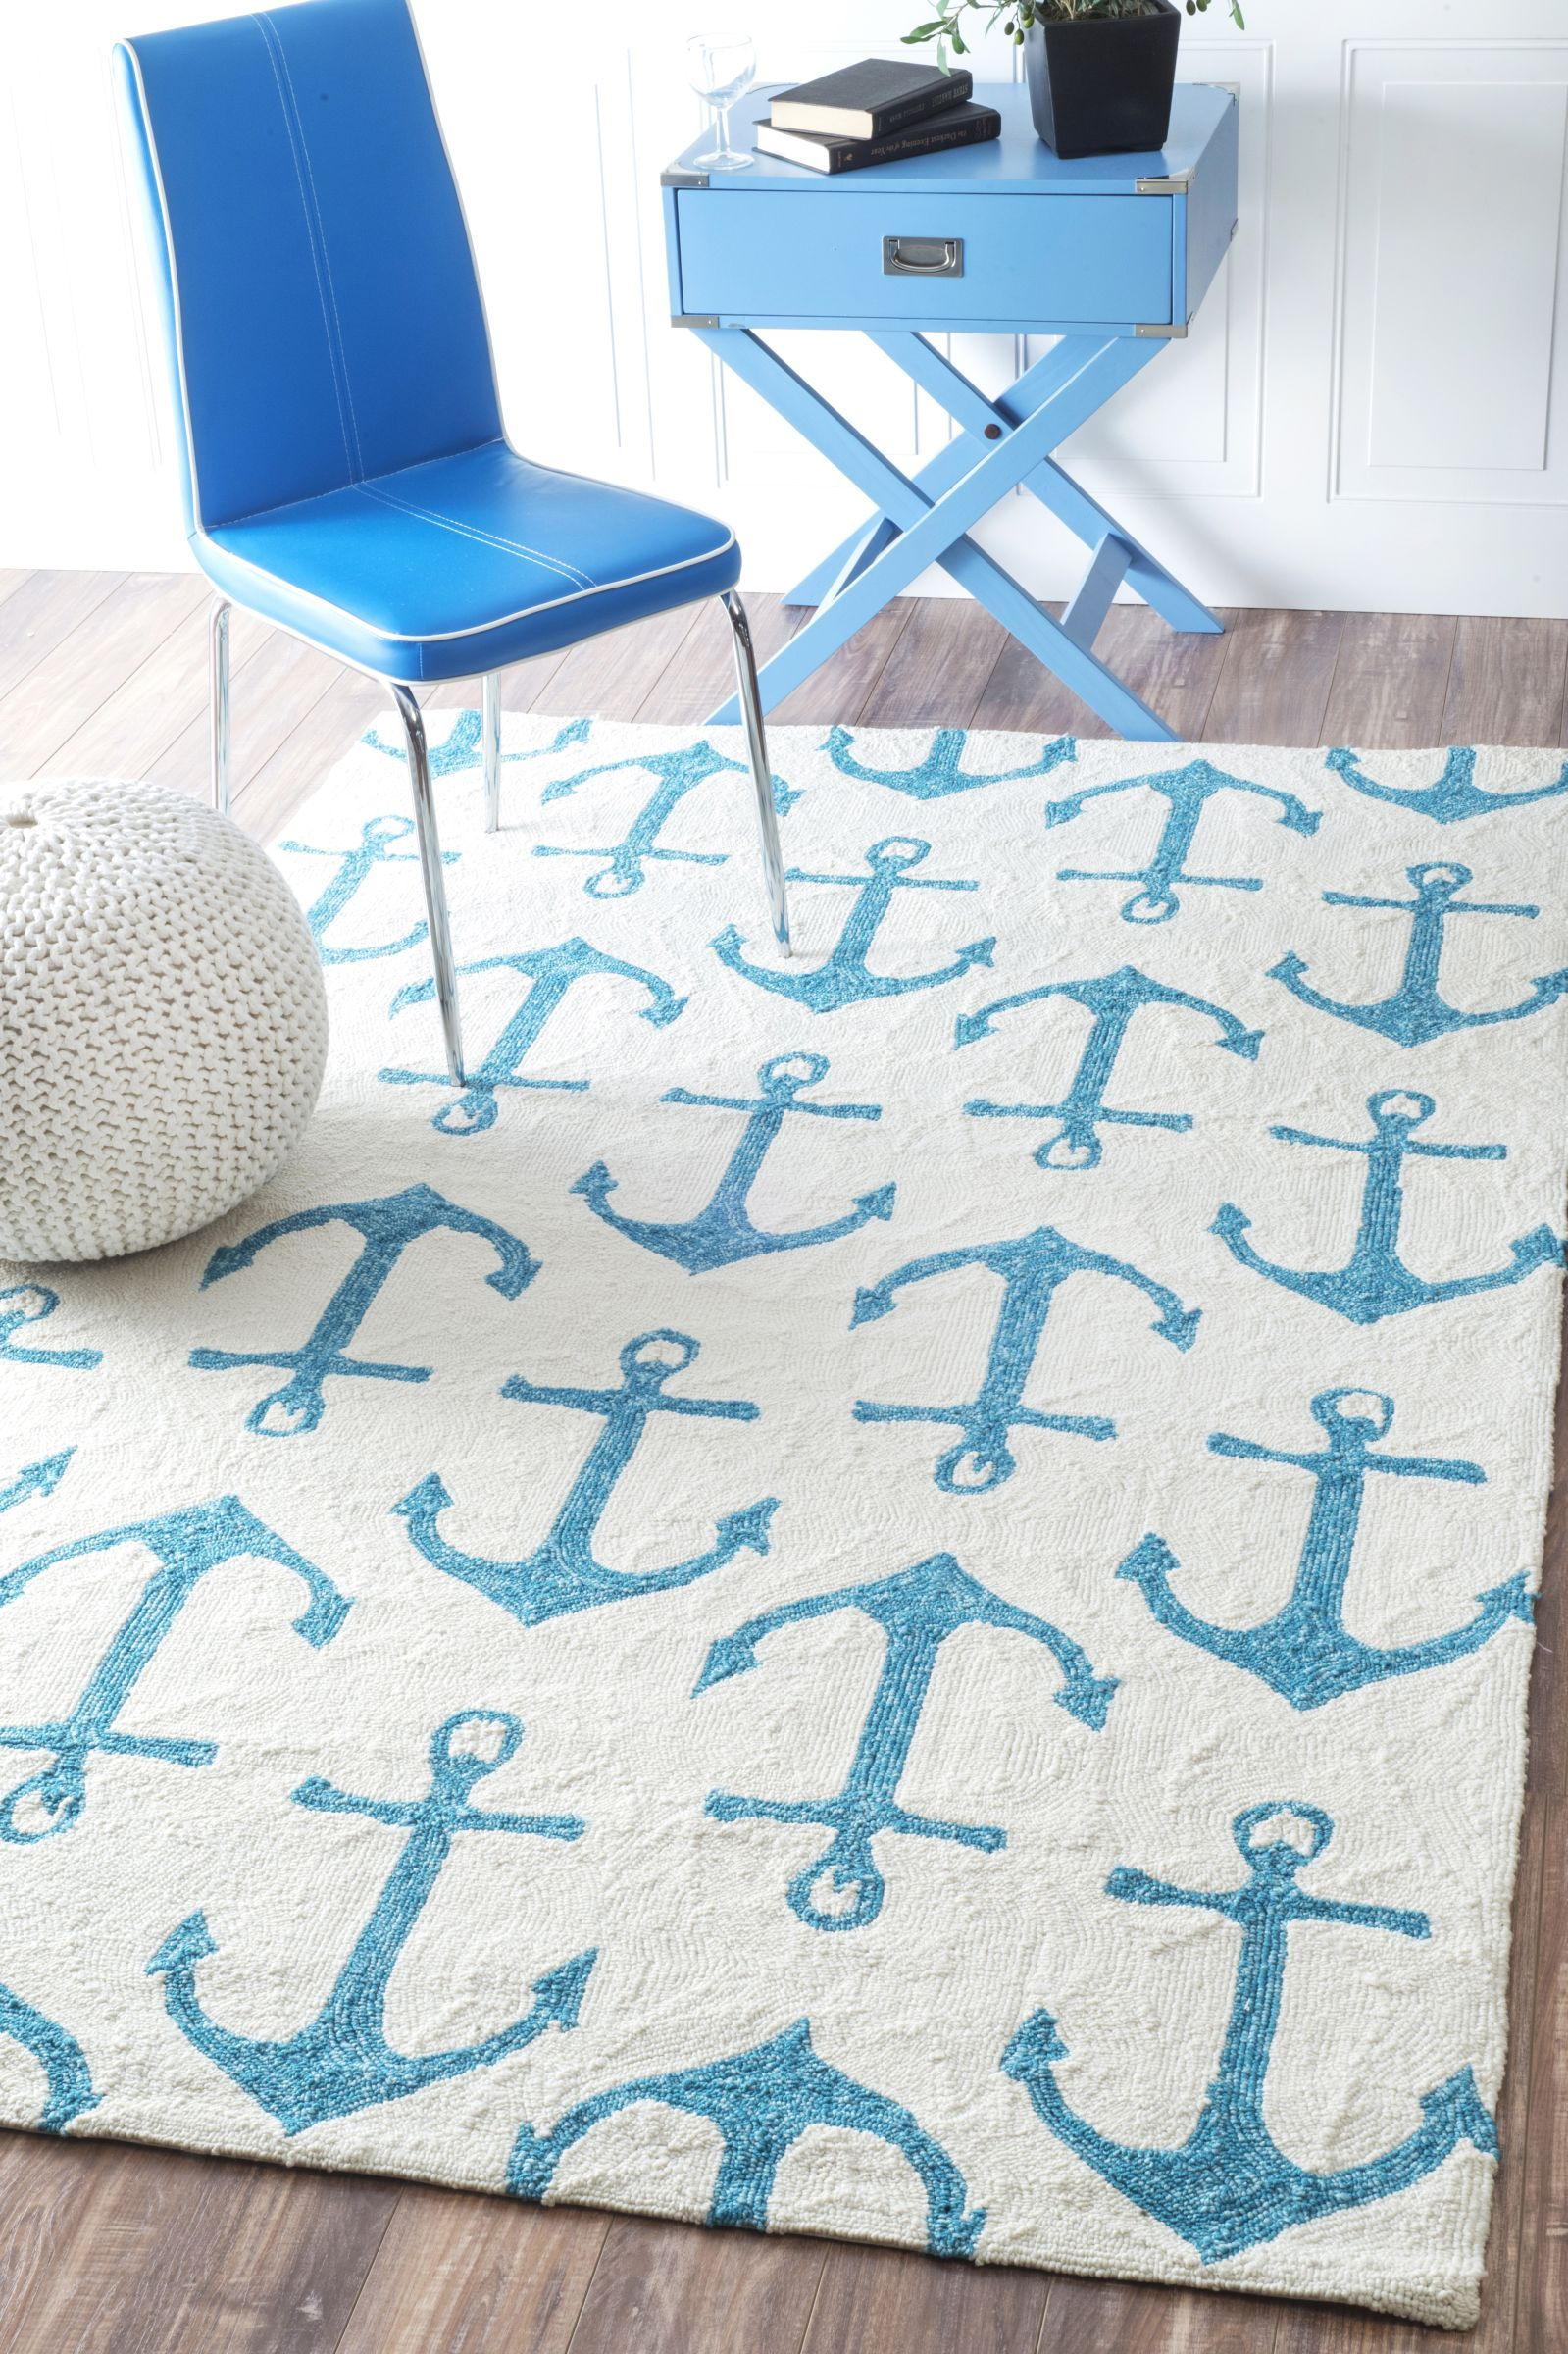 Open For Business Message Nautical Area Rugs Anchor Decor Handmade Novelty